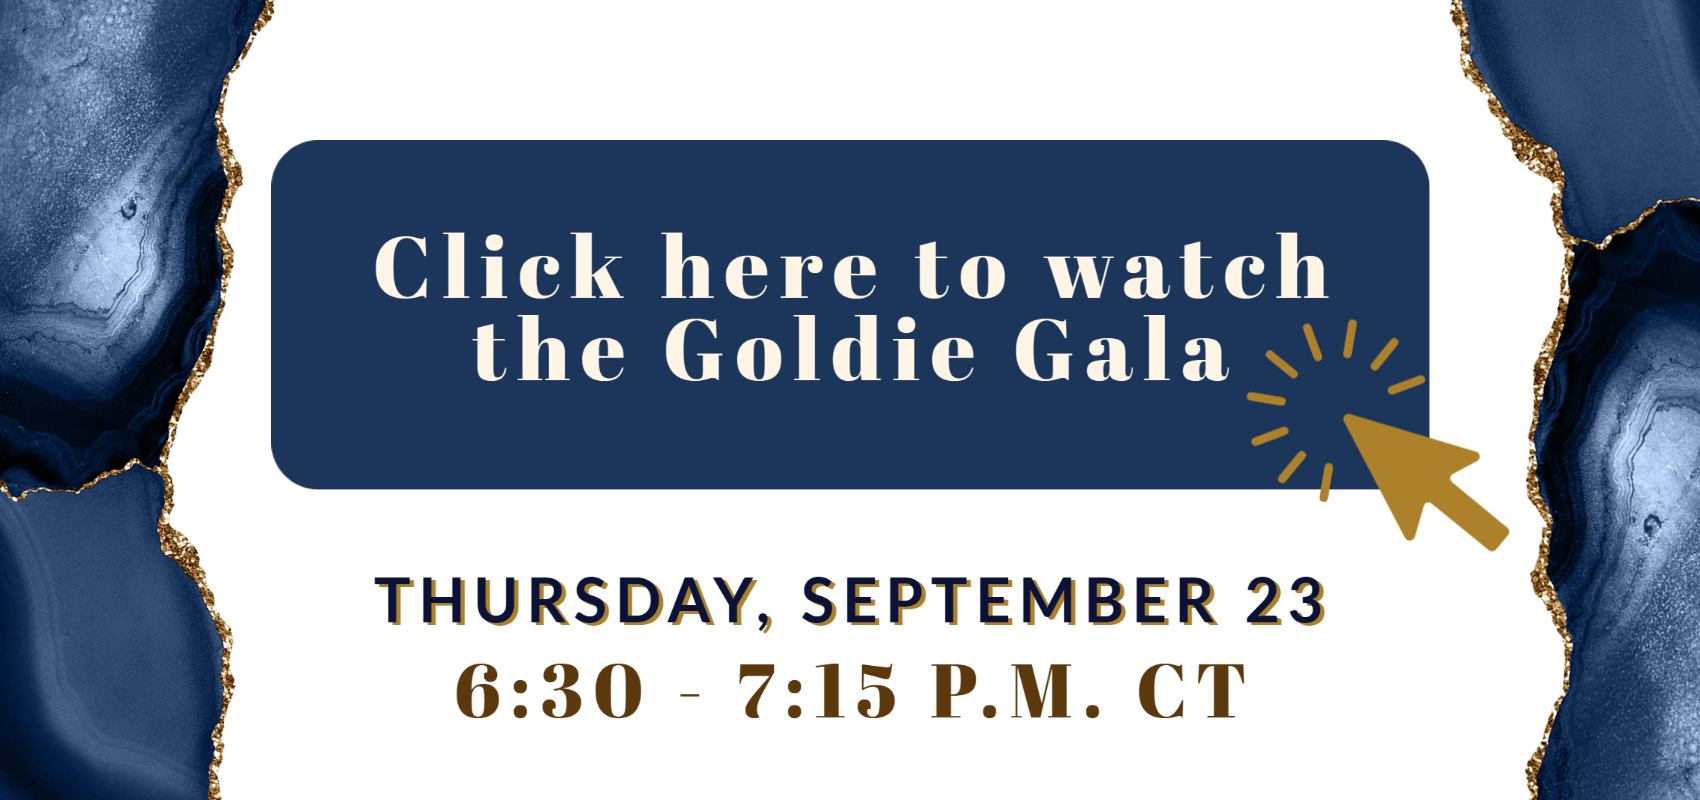 Click here to watch Goldie Gala